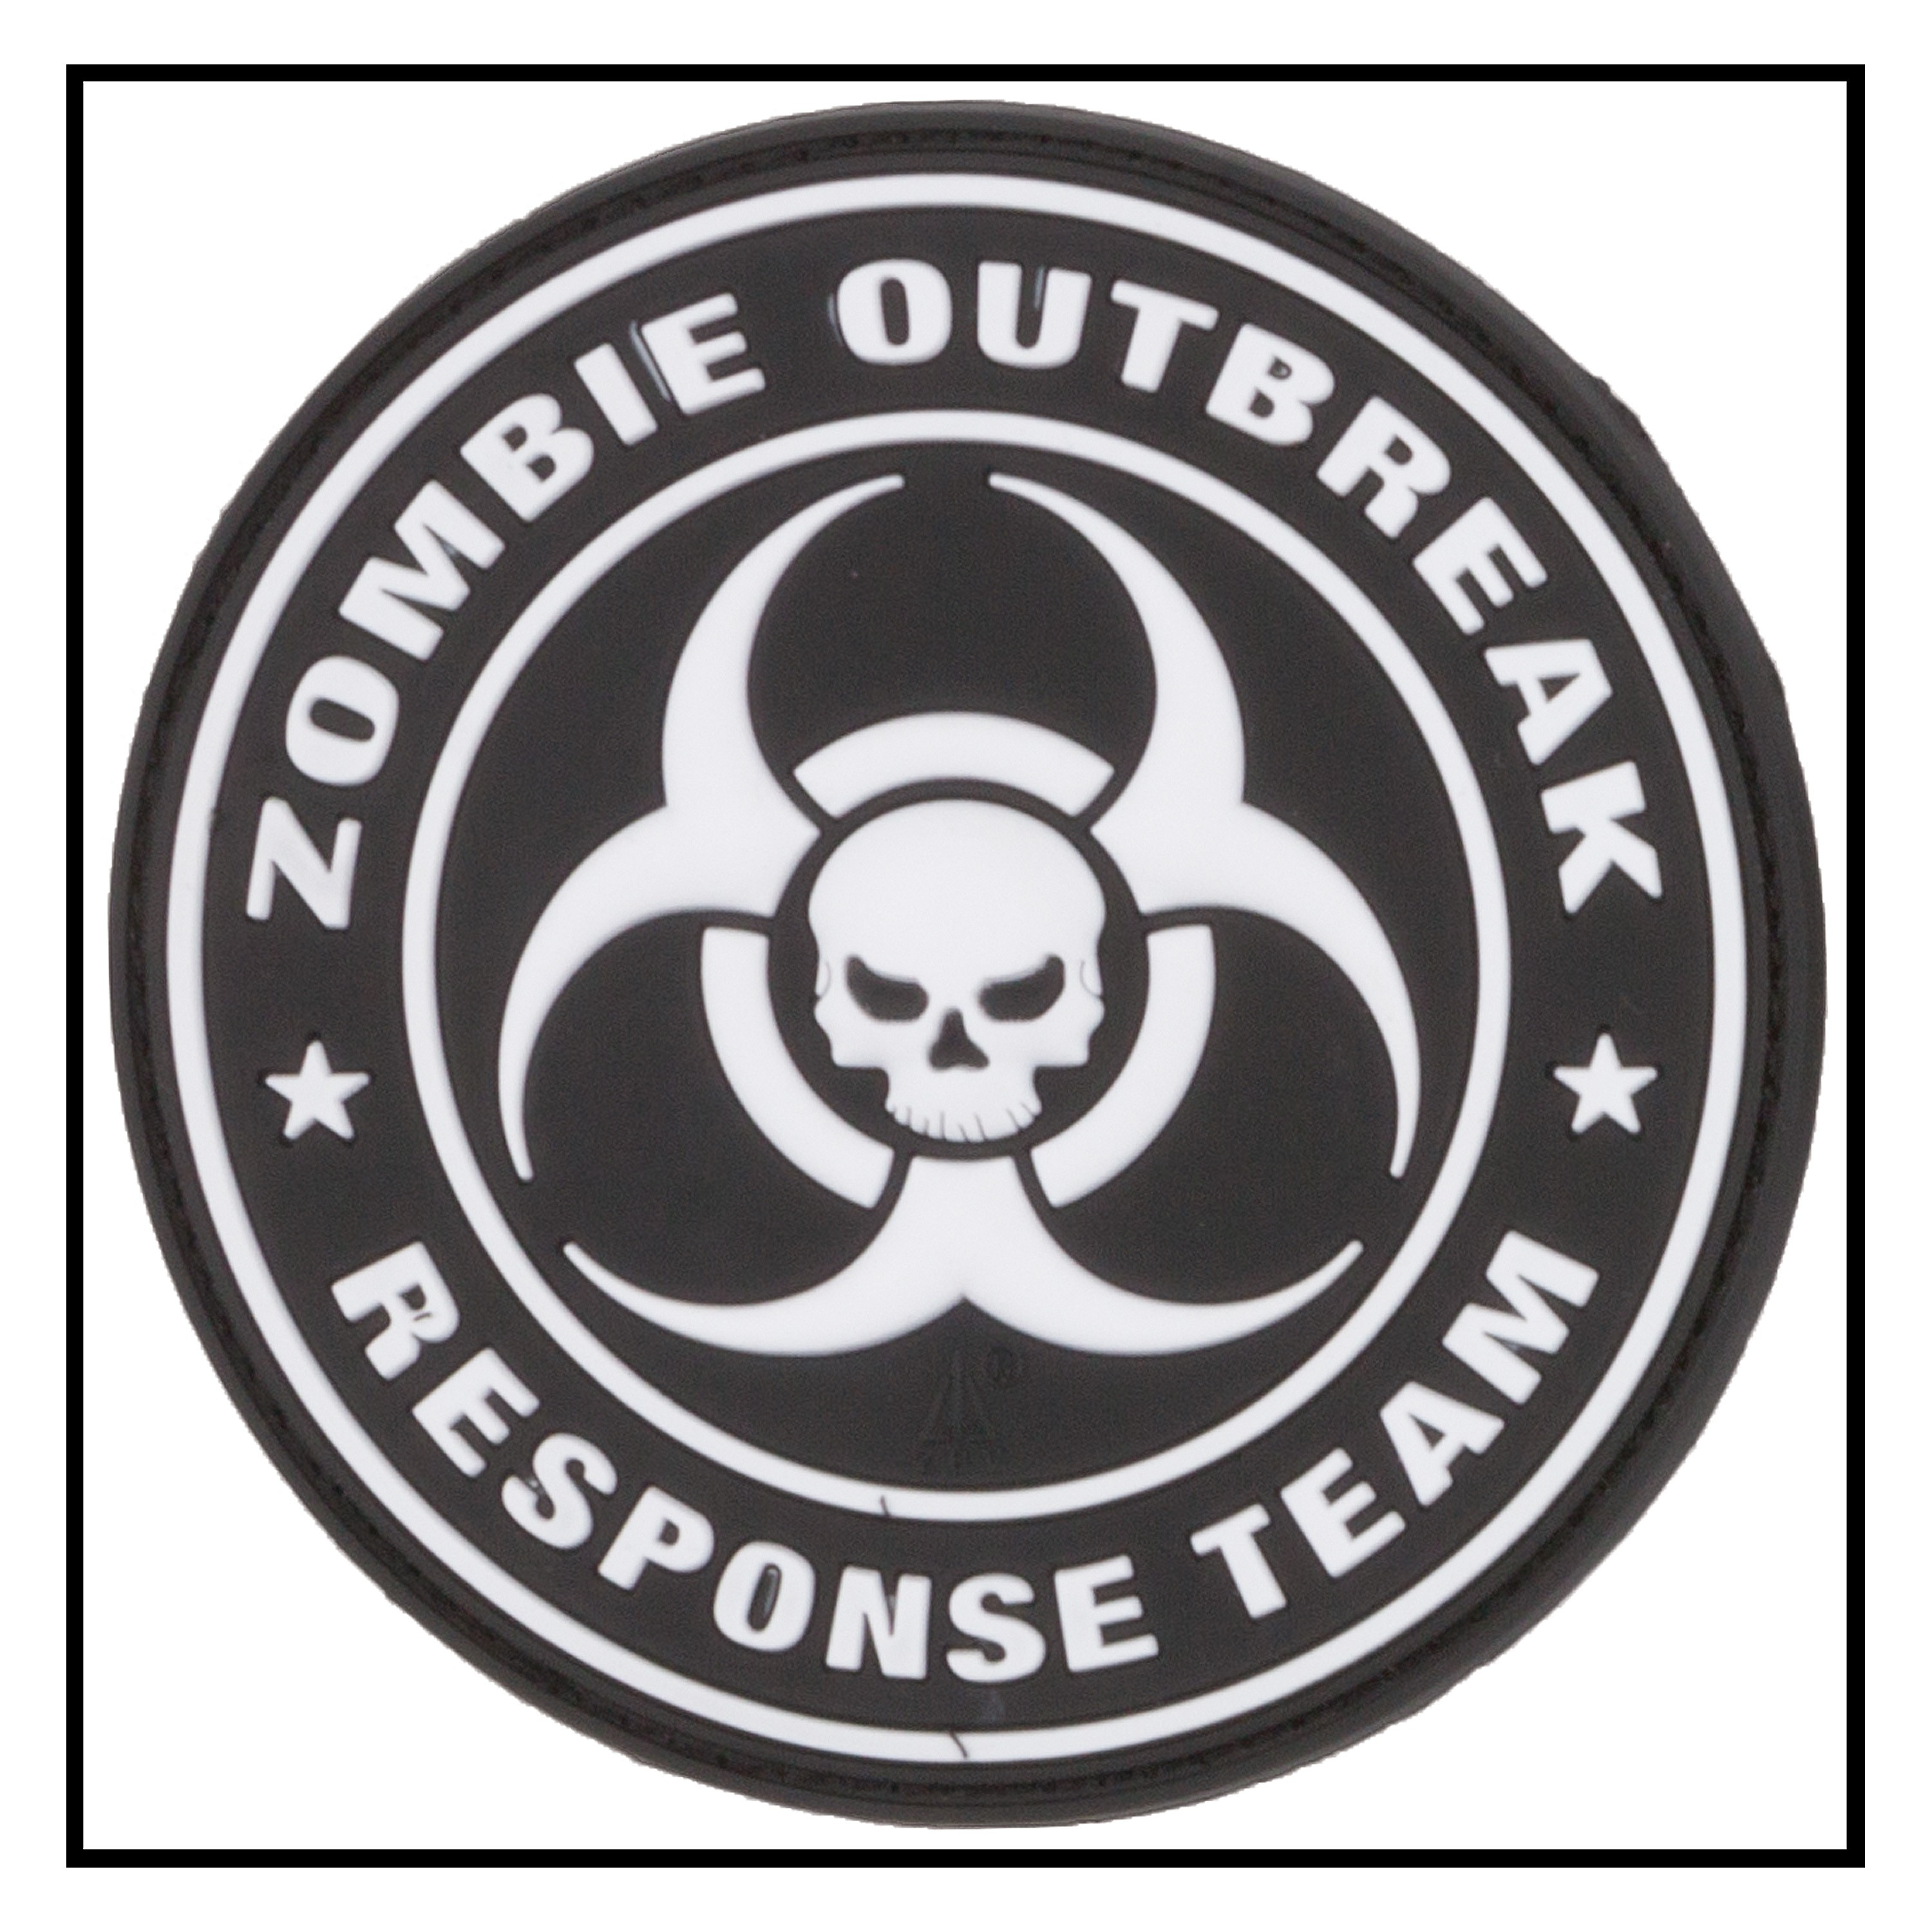 3D-Patch Zombie Outbreak Response Team swat